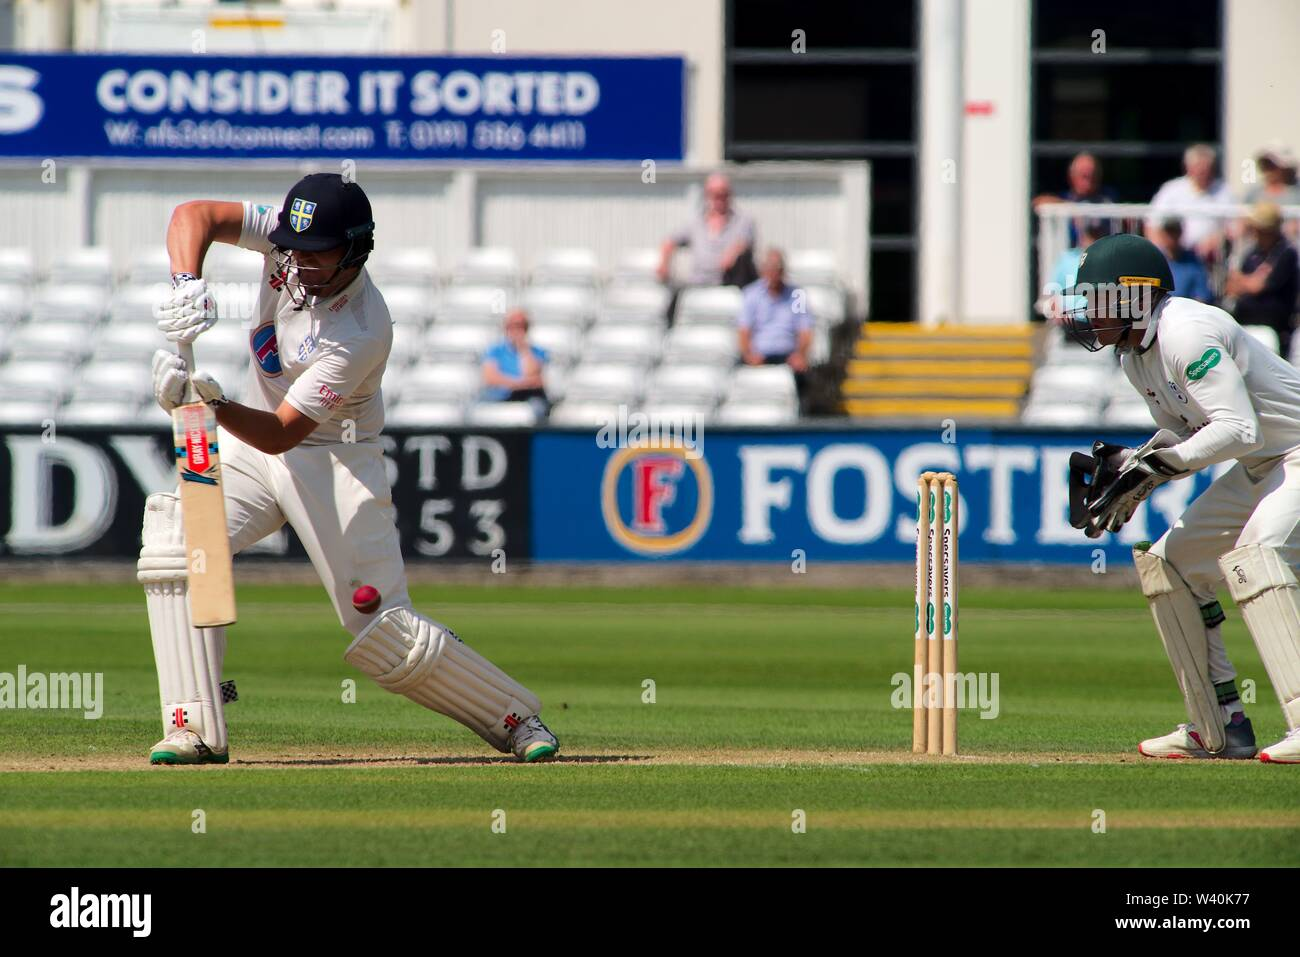 Chester le Street, England, 15 July 2019. Alex Lees batting for Durham during their Specsavers County Championship match against Worcestershire at the Emirates Riverside, Chester le Street. - Stock Image